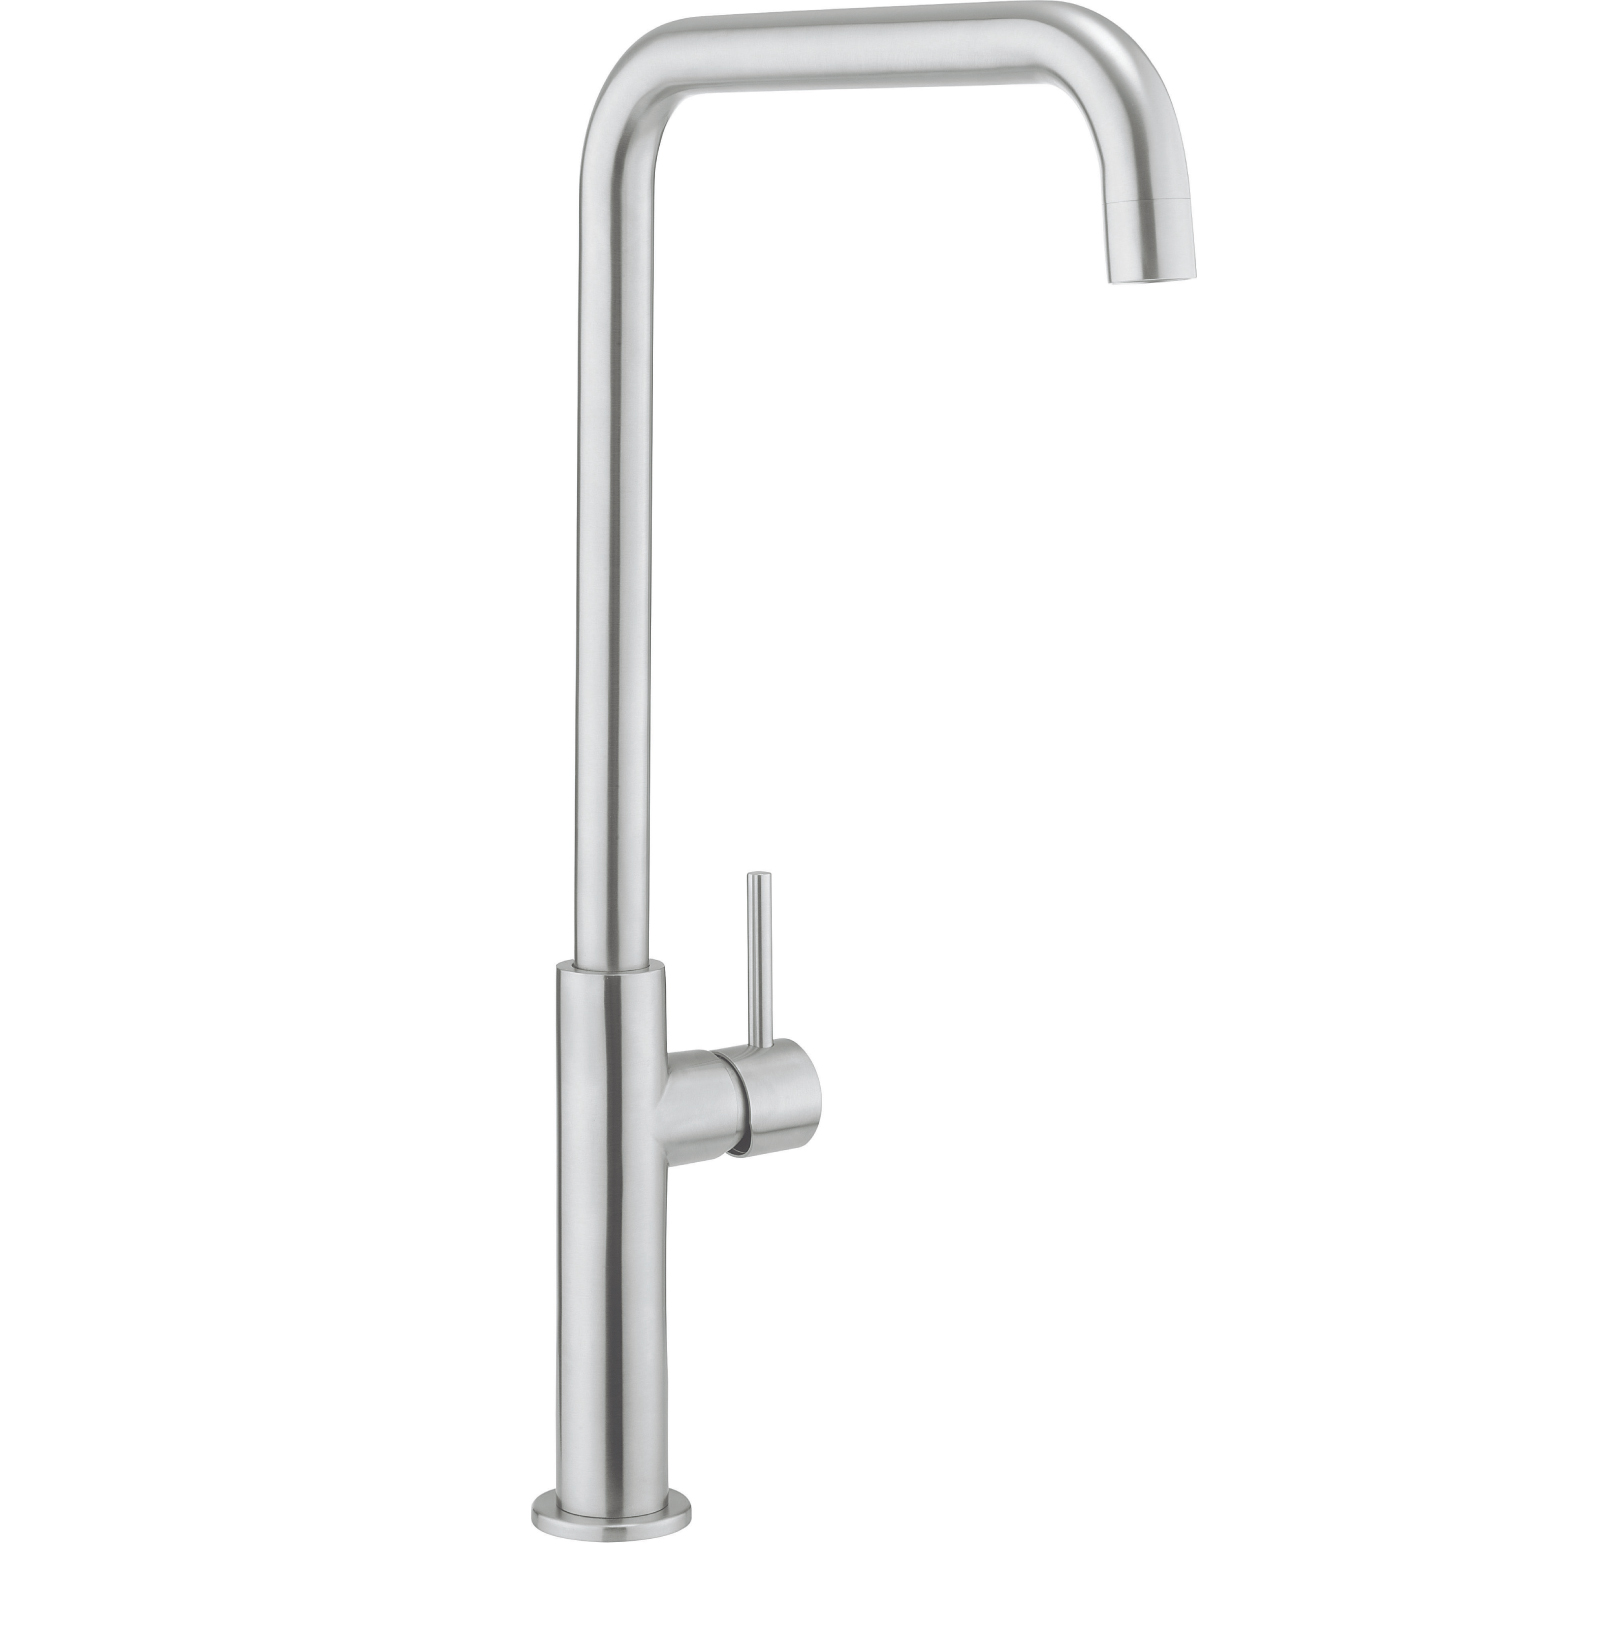 Crosswater ninety tall side lever kitchen mixer stainless steel nt712ds - Luisina mixer ...